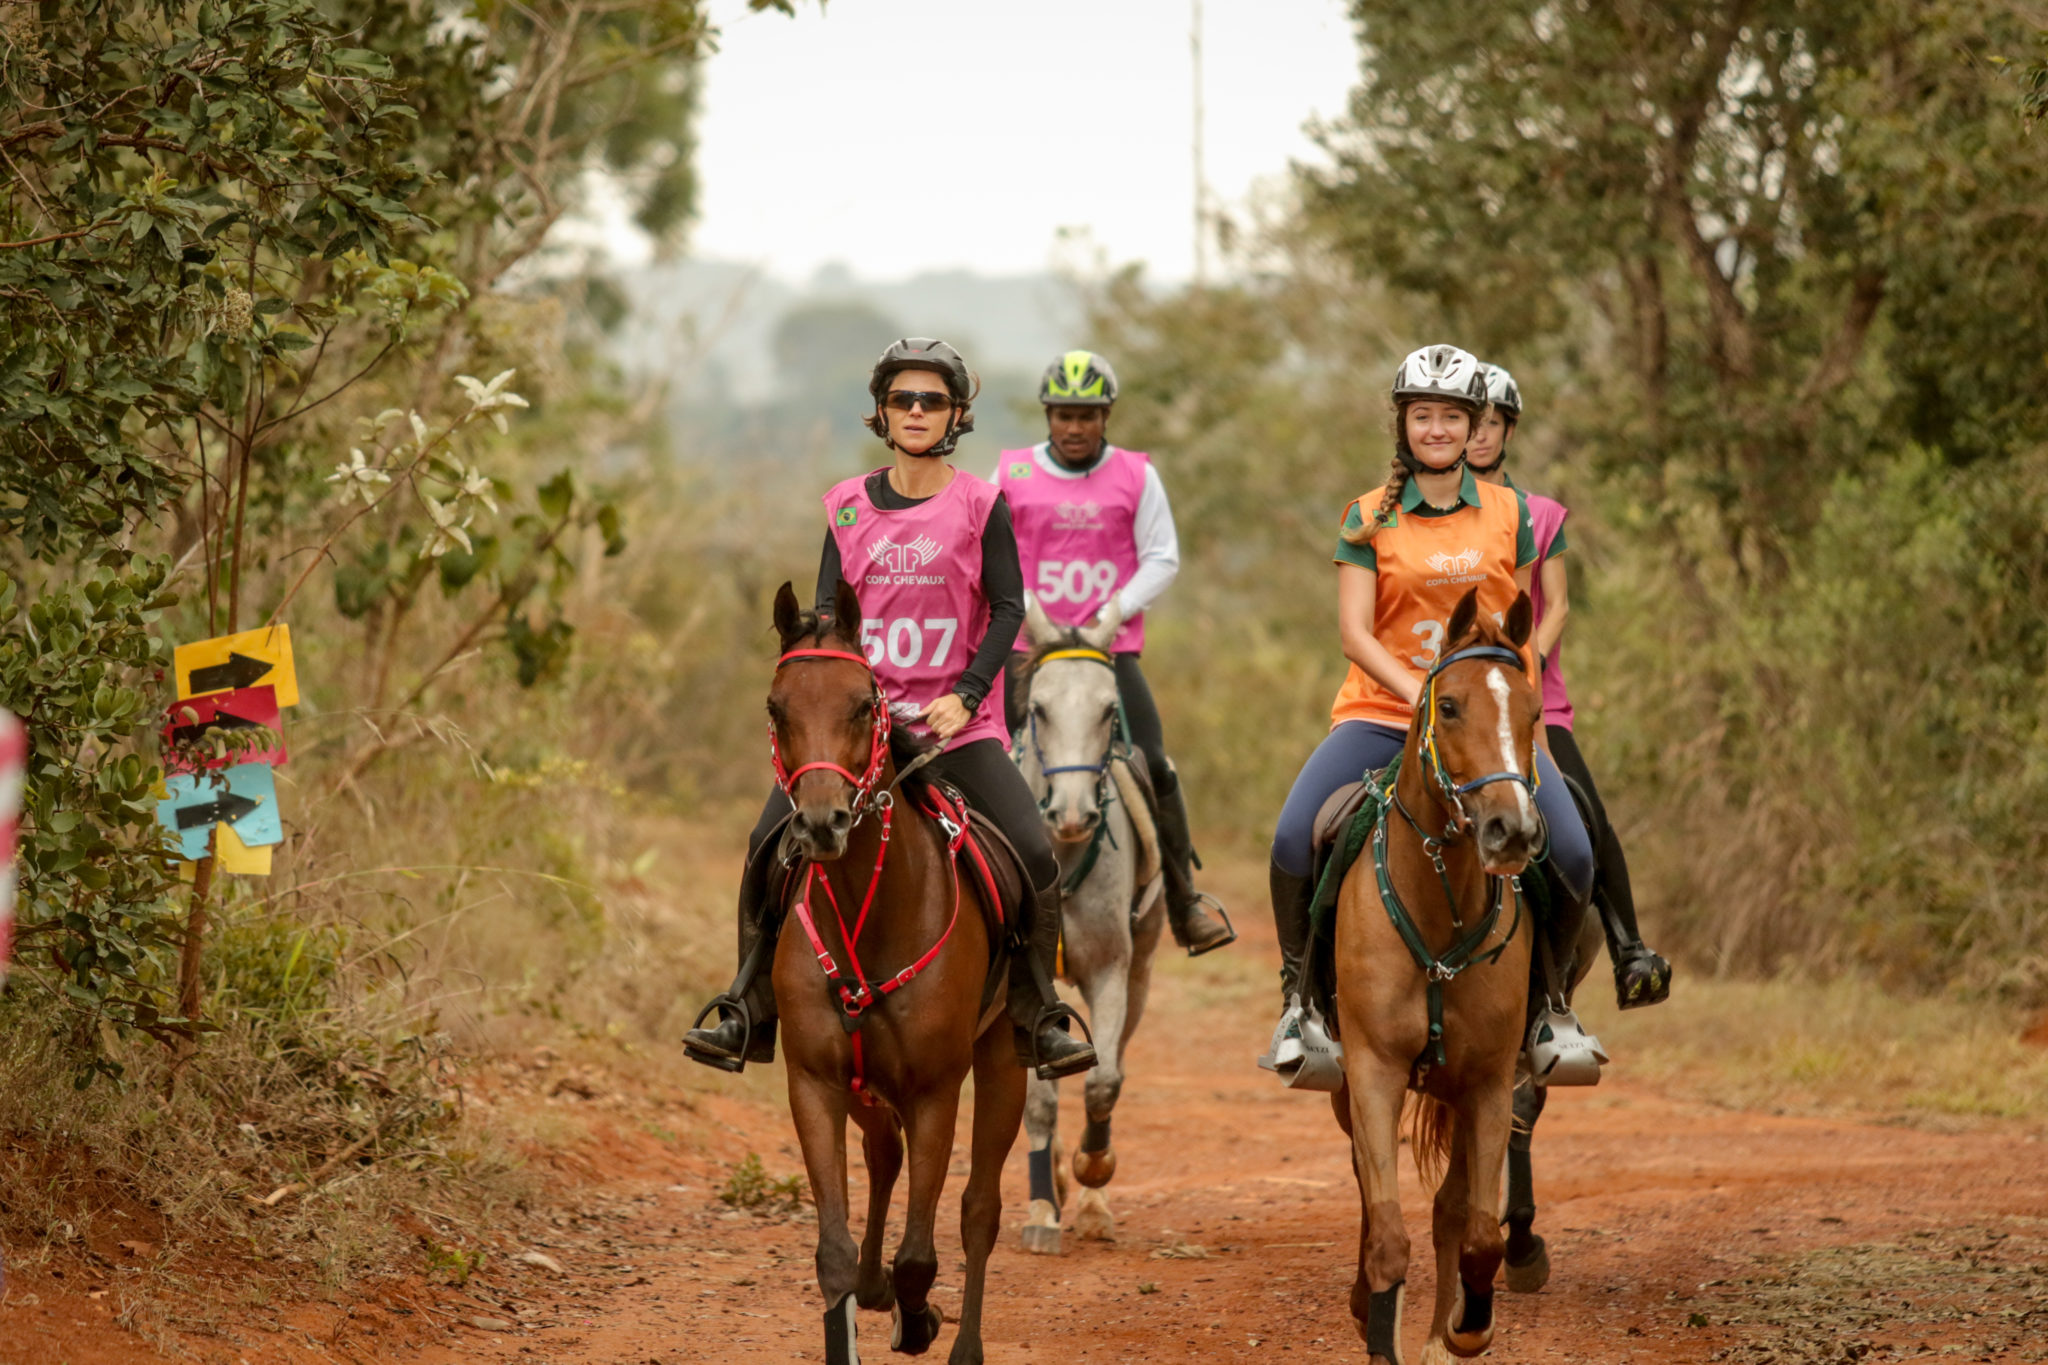 Endurance World Brasilia. A group of riders leaving the forest.